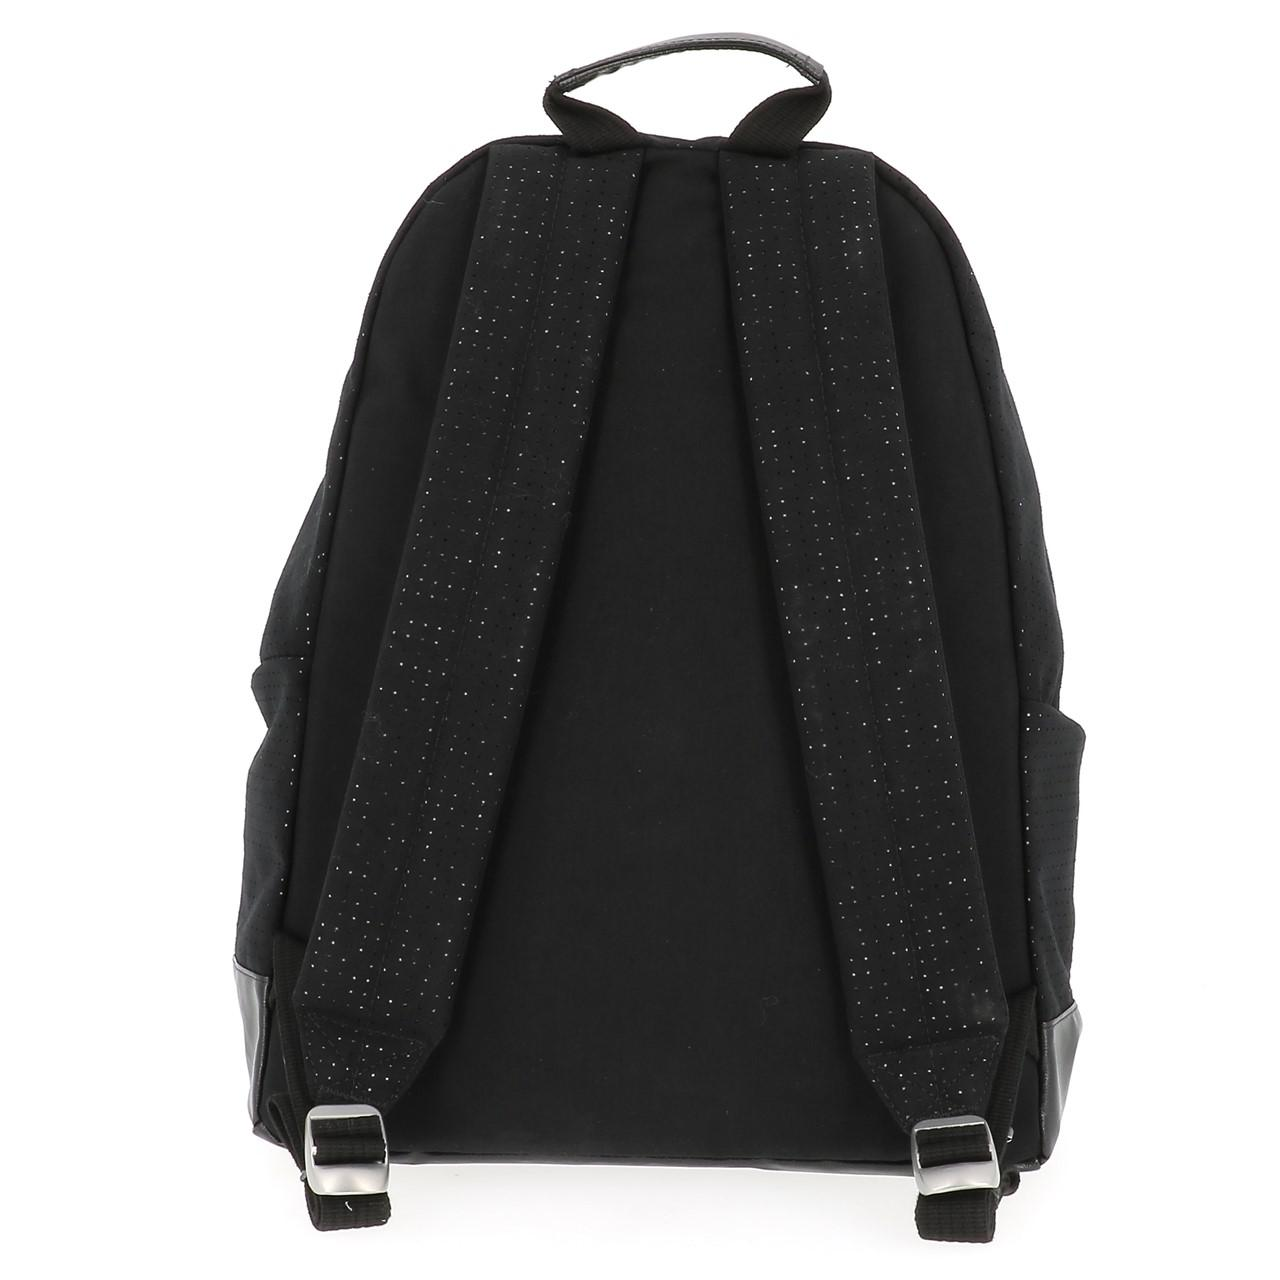 Sac-a-dos-college-Eastpak-Padded-pinched-black-Noir-70649-Neuf miniature 5